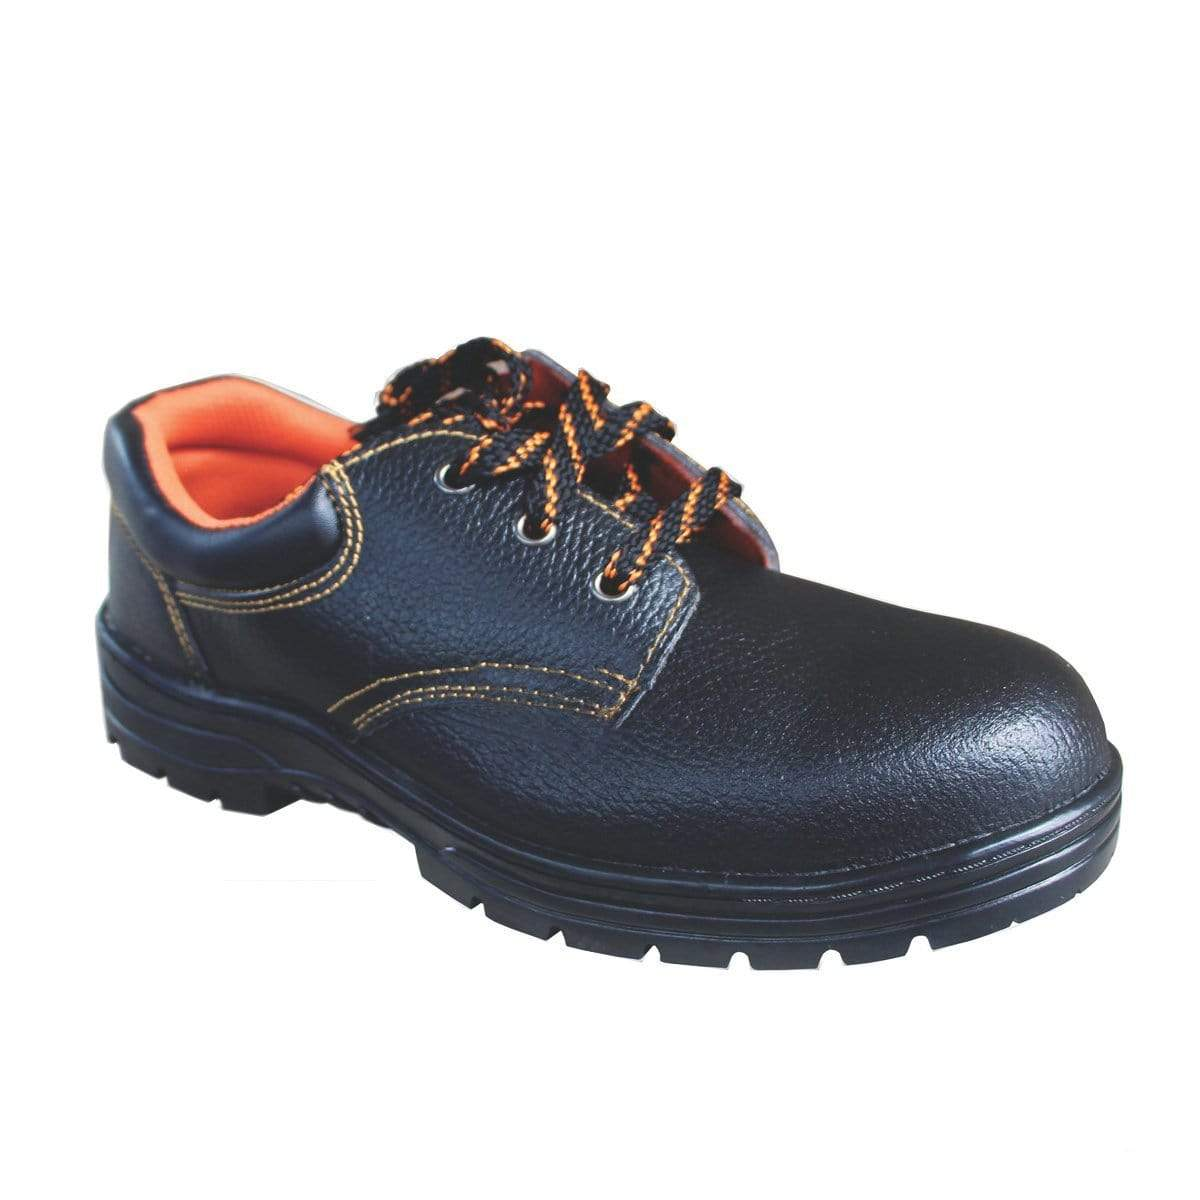 ANEKA Worker Safety Shoes Safety Boots Steel Toe Cap Kasut UK8 1000#